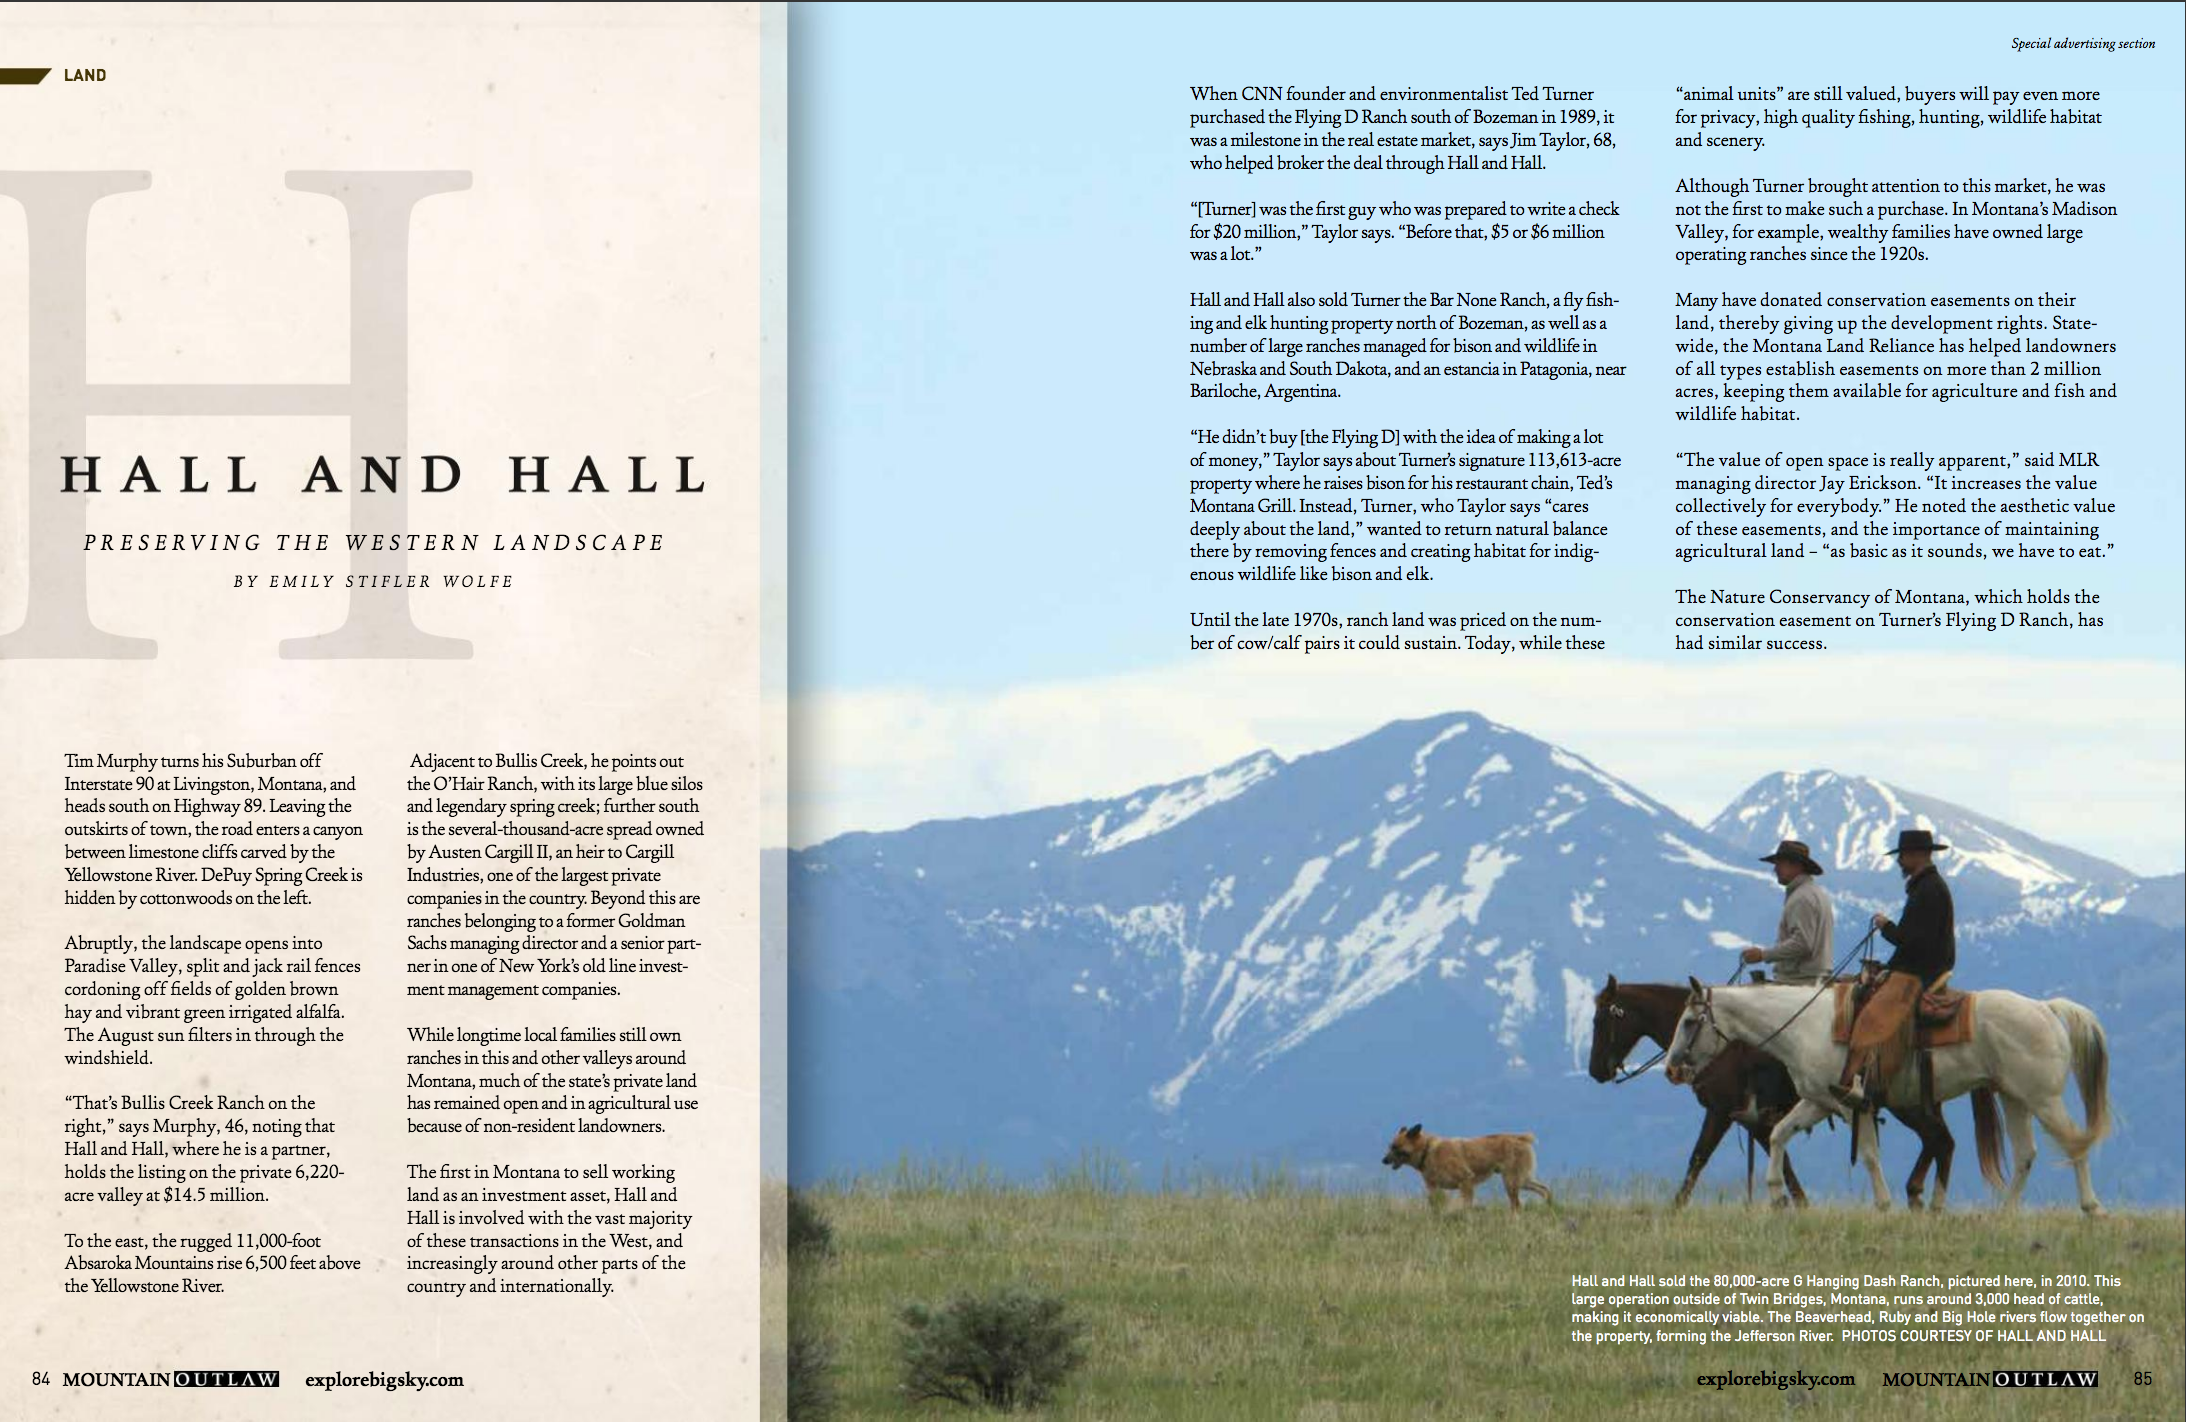 Feature Advertorial   A look at the booming high-end ranch real estate industry and its effects on the western landscape. Published in Mountain Outlaw.  Hall and Hall